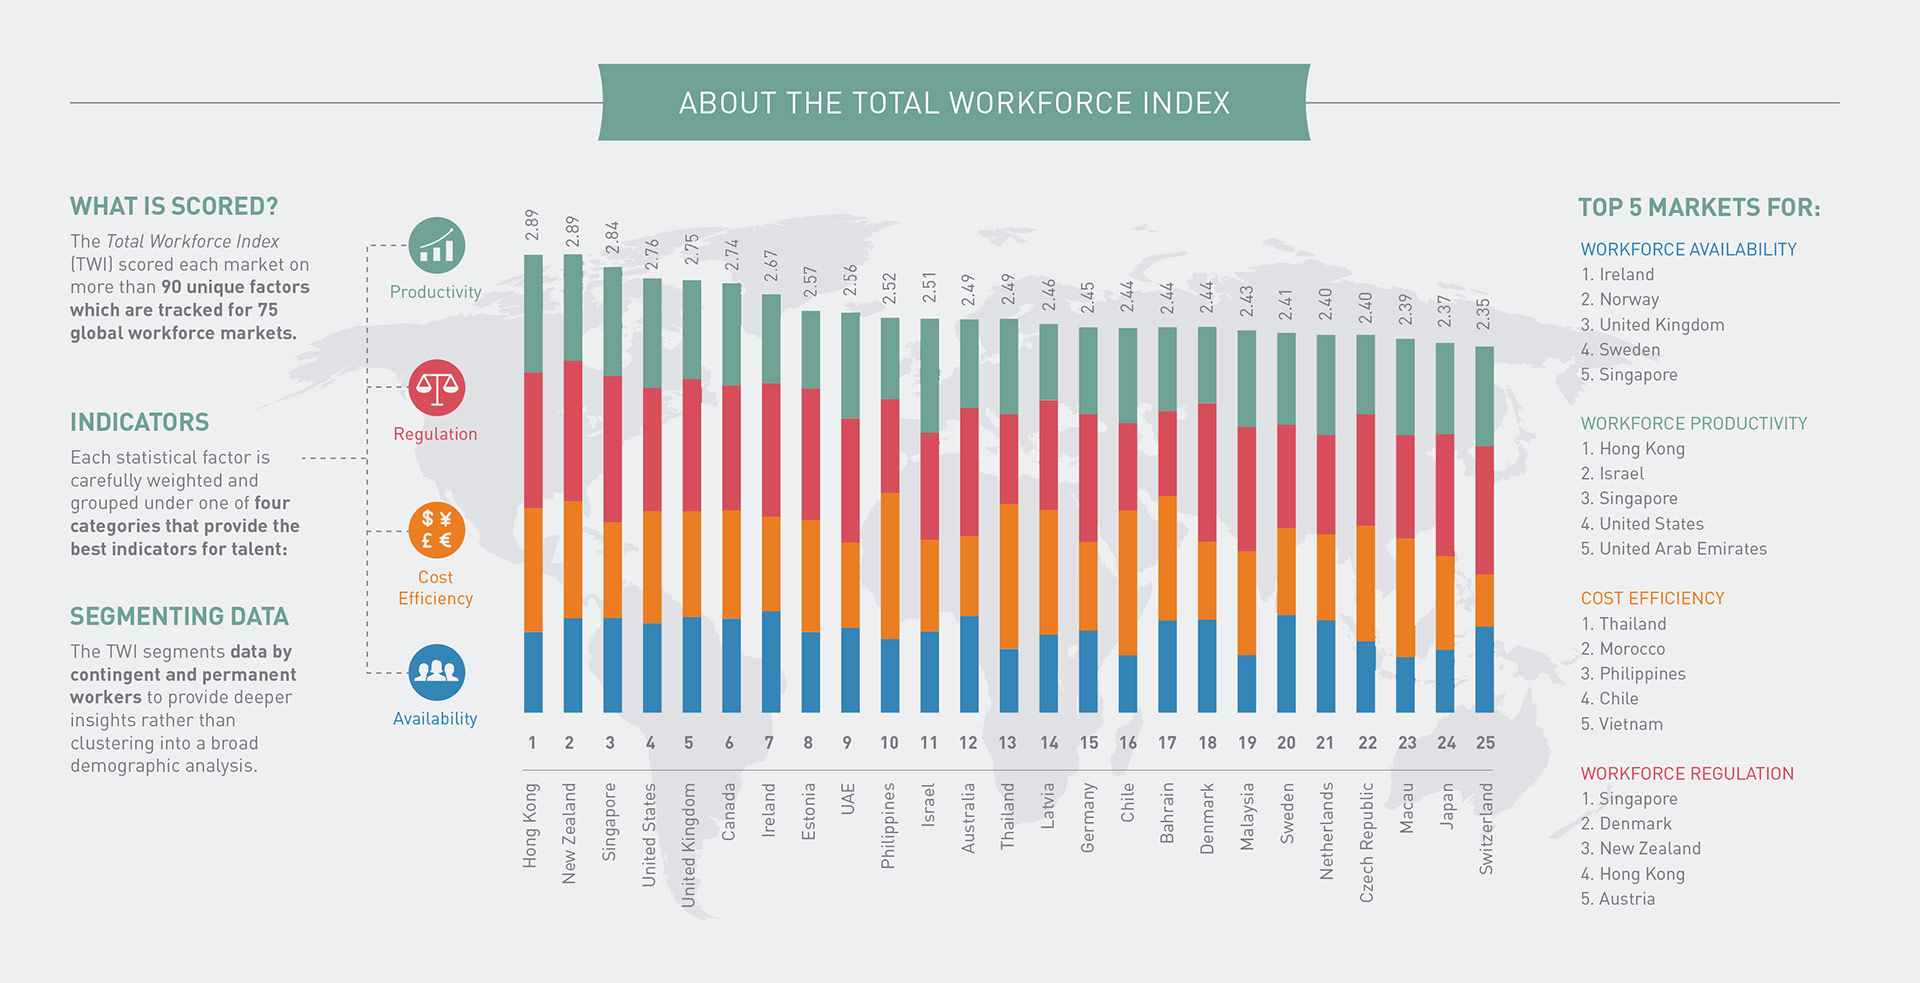 About the total workforce index